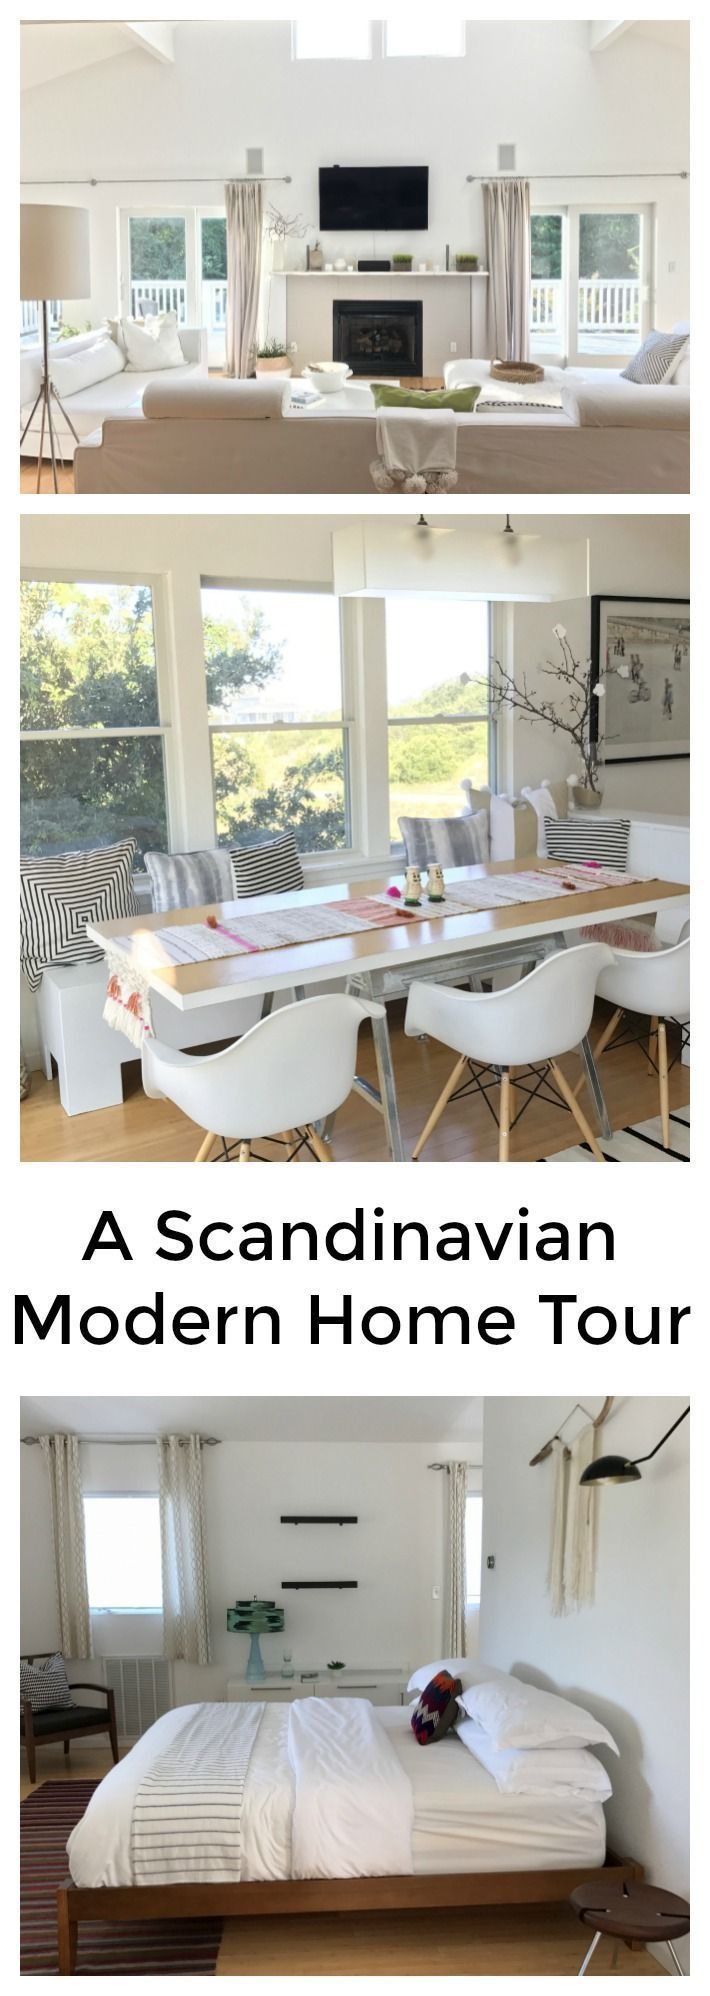 Take  home tour of stunning scandinavian design modern whether you  re looking for decor ideas how to be hygge searching also rh pinterest